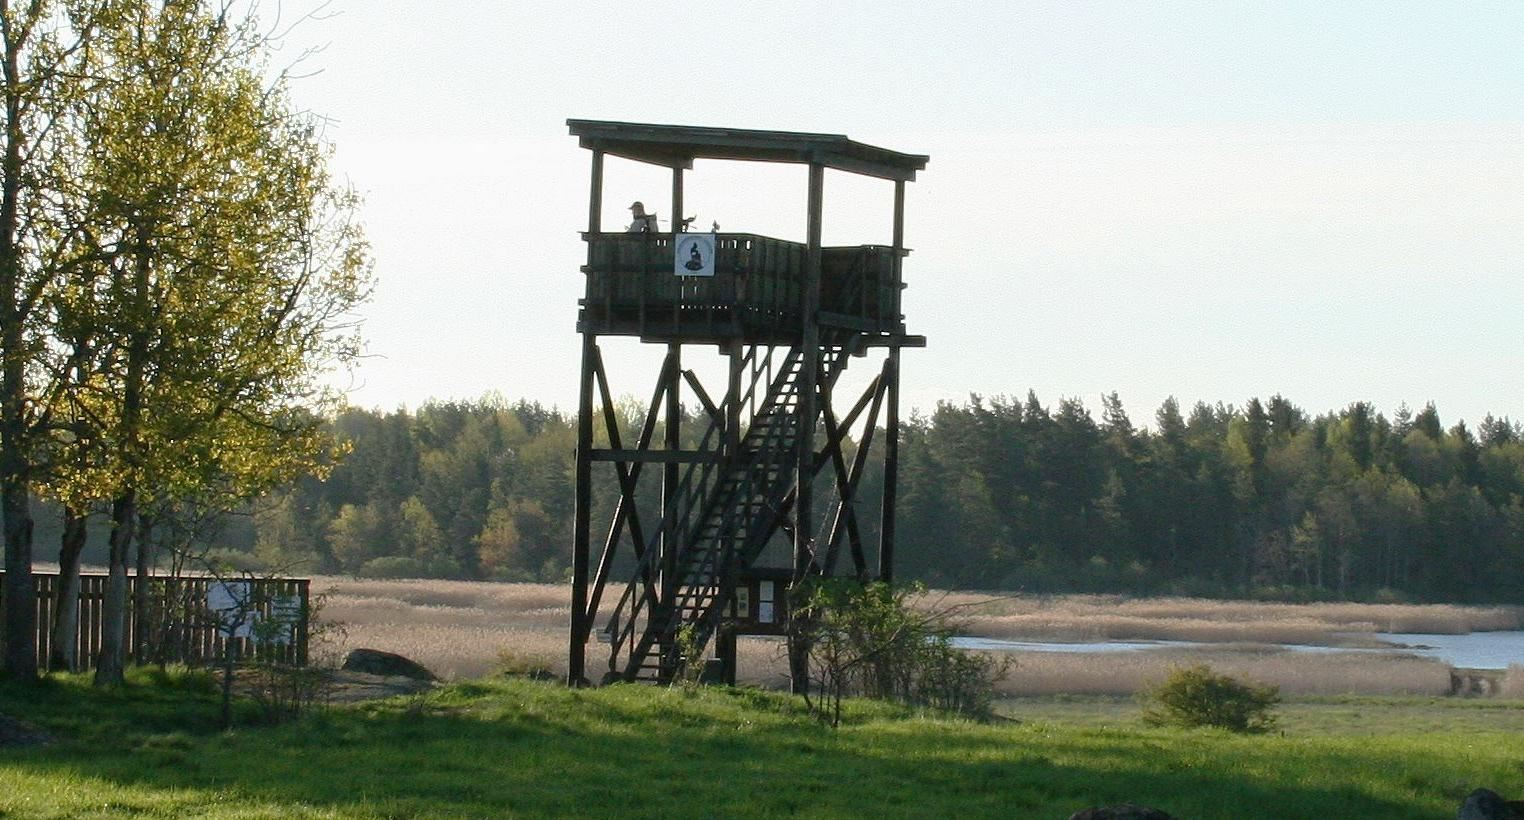 Jan Brenander, Målsjöns Bird Observation Towers